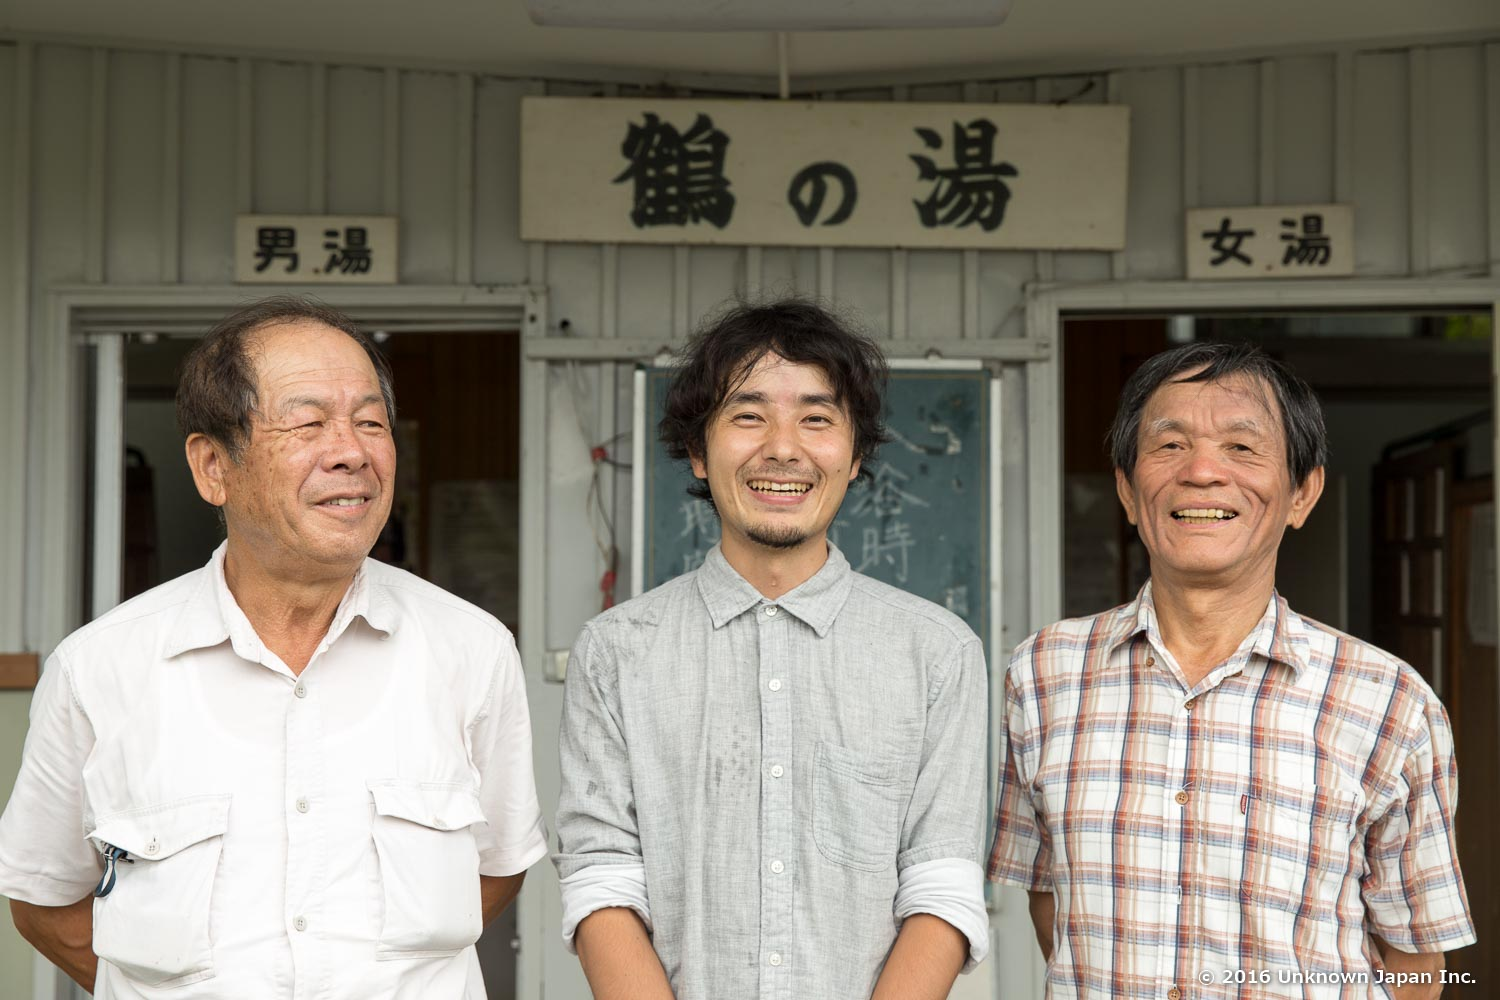 With  Okihiro Takahashi  and  Itsuo Kusadome , shareholders of  Tsuru no yu Onsen , in front of the entrance